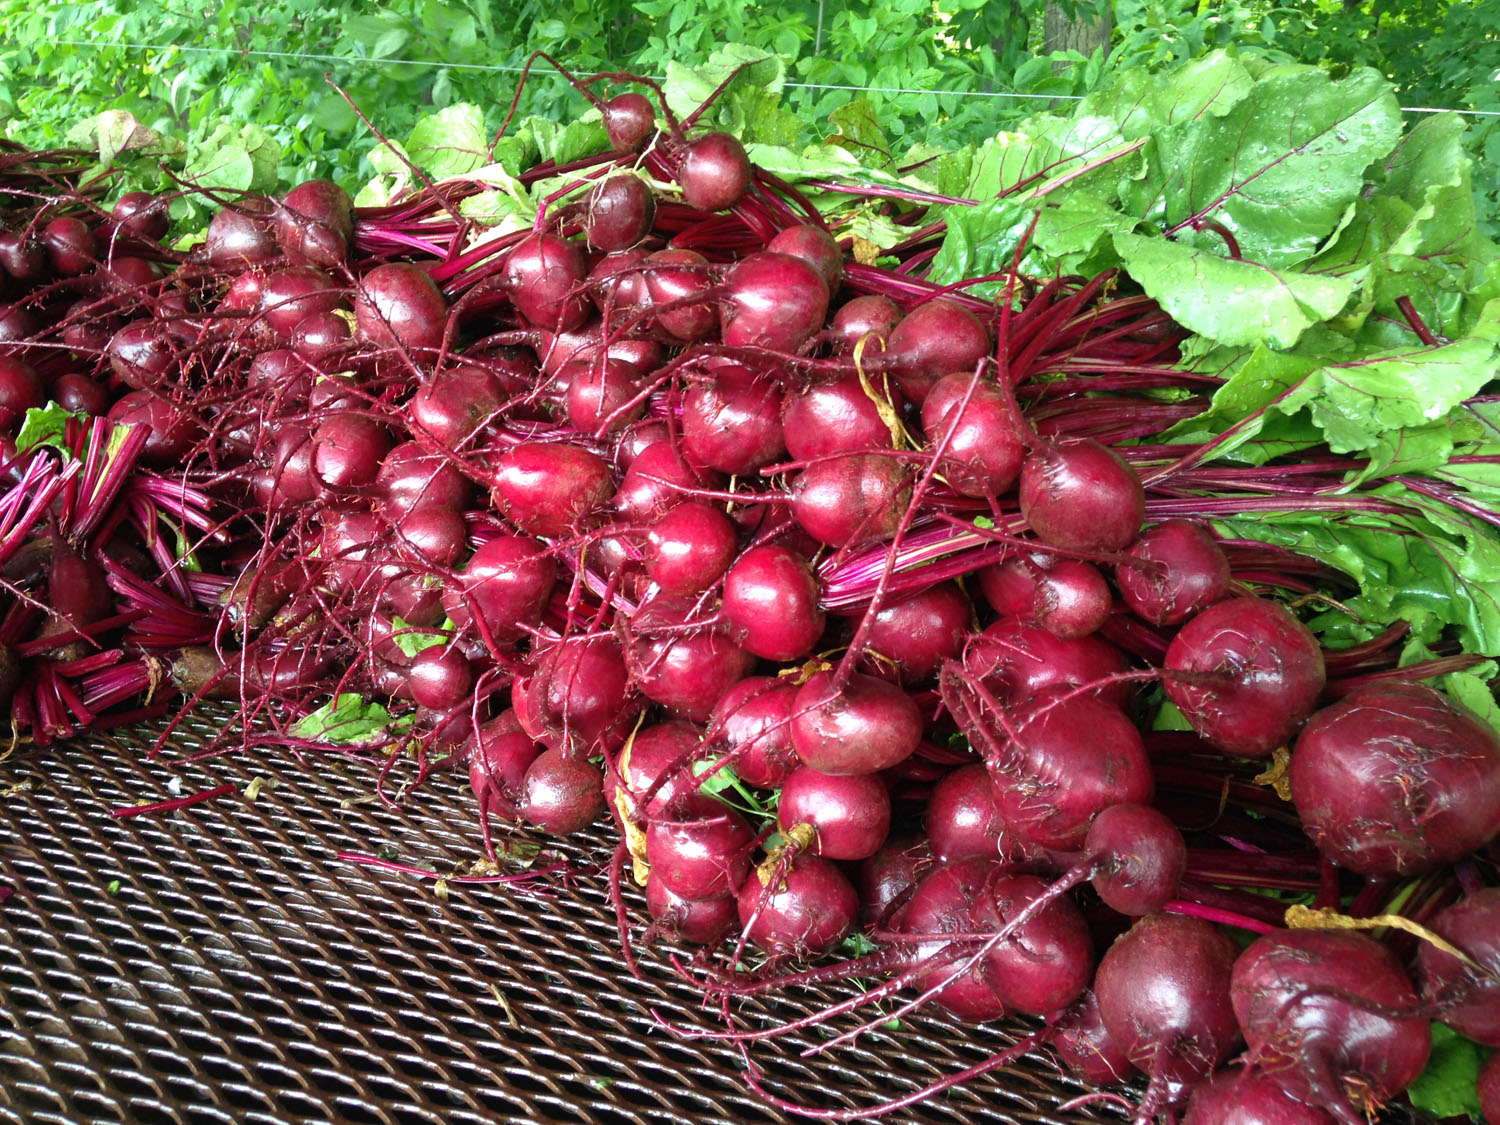 Red Round Beets